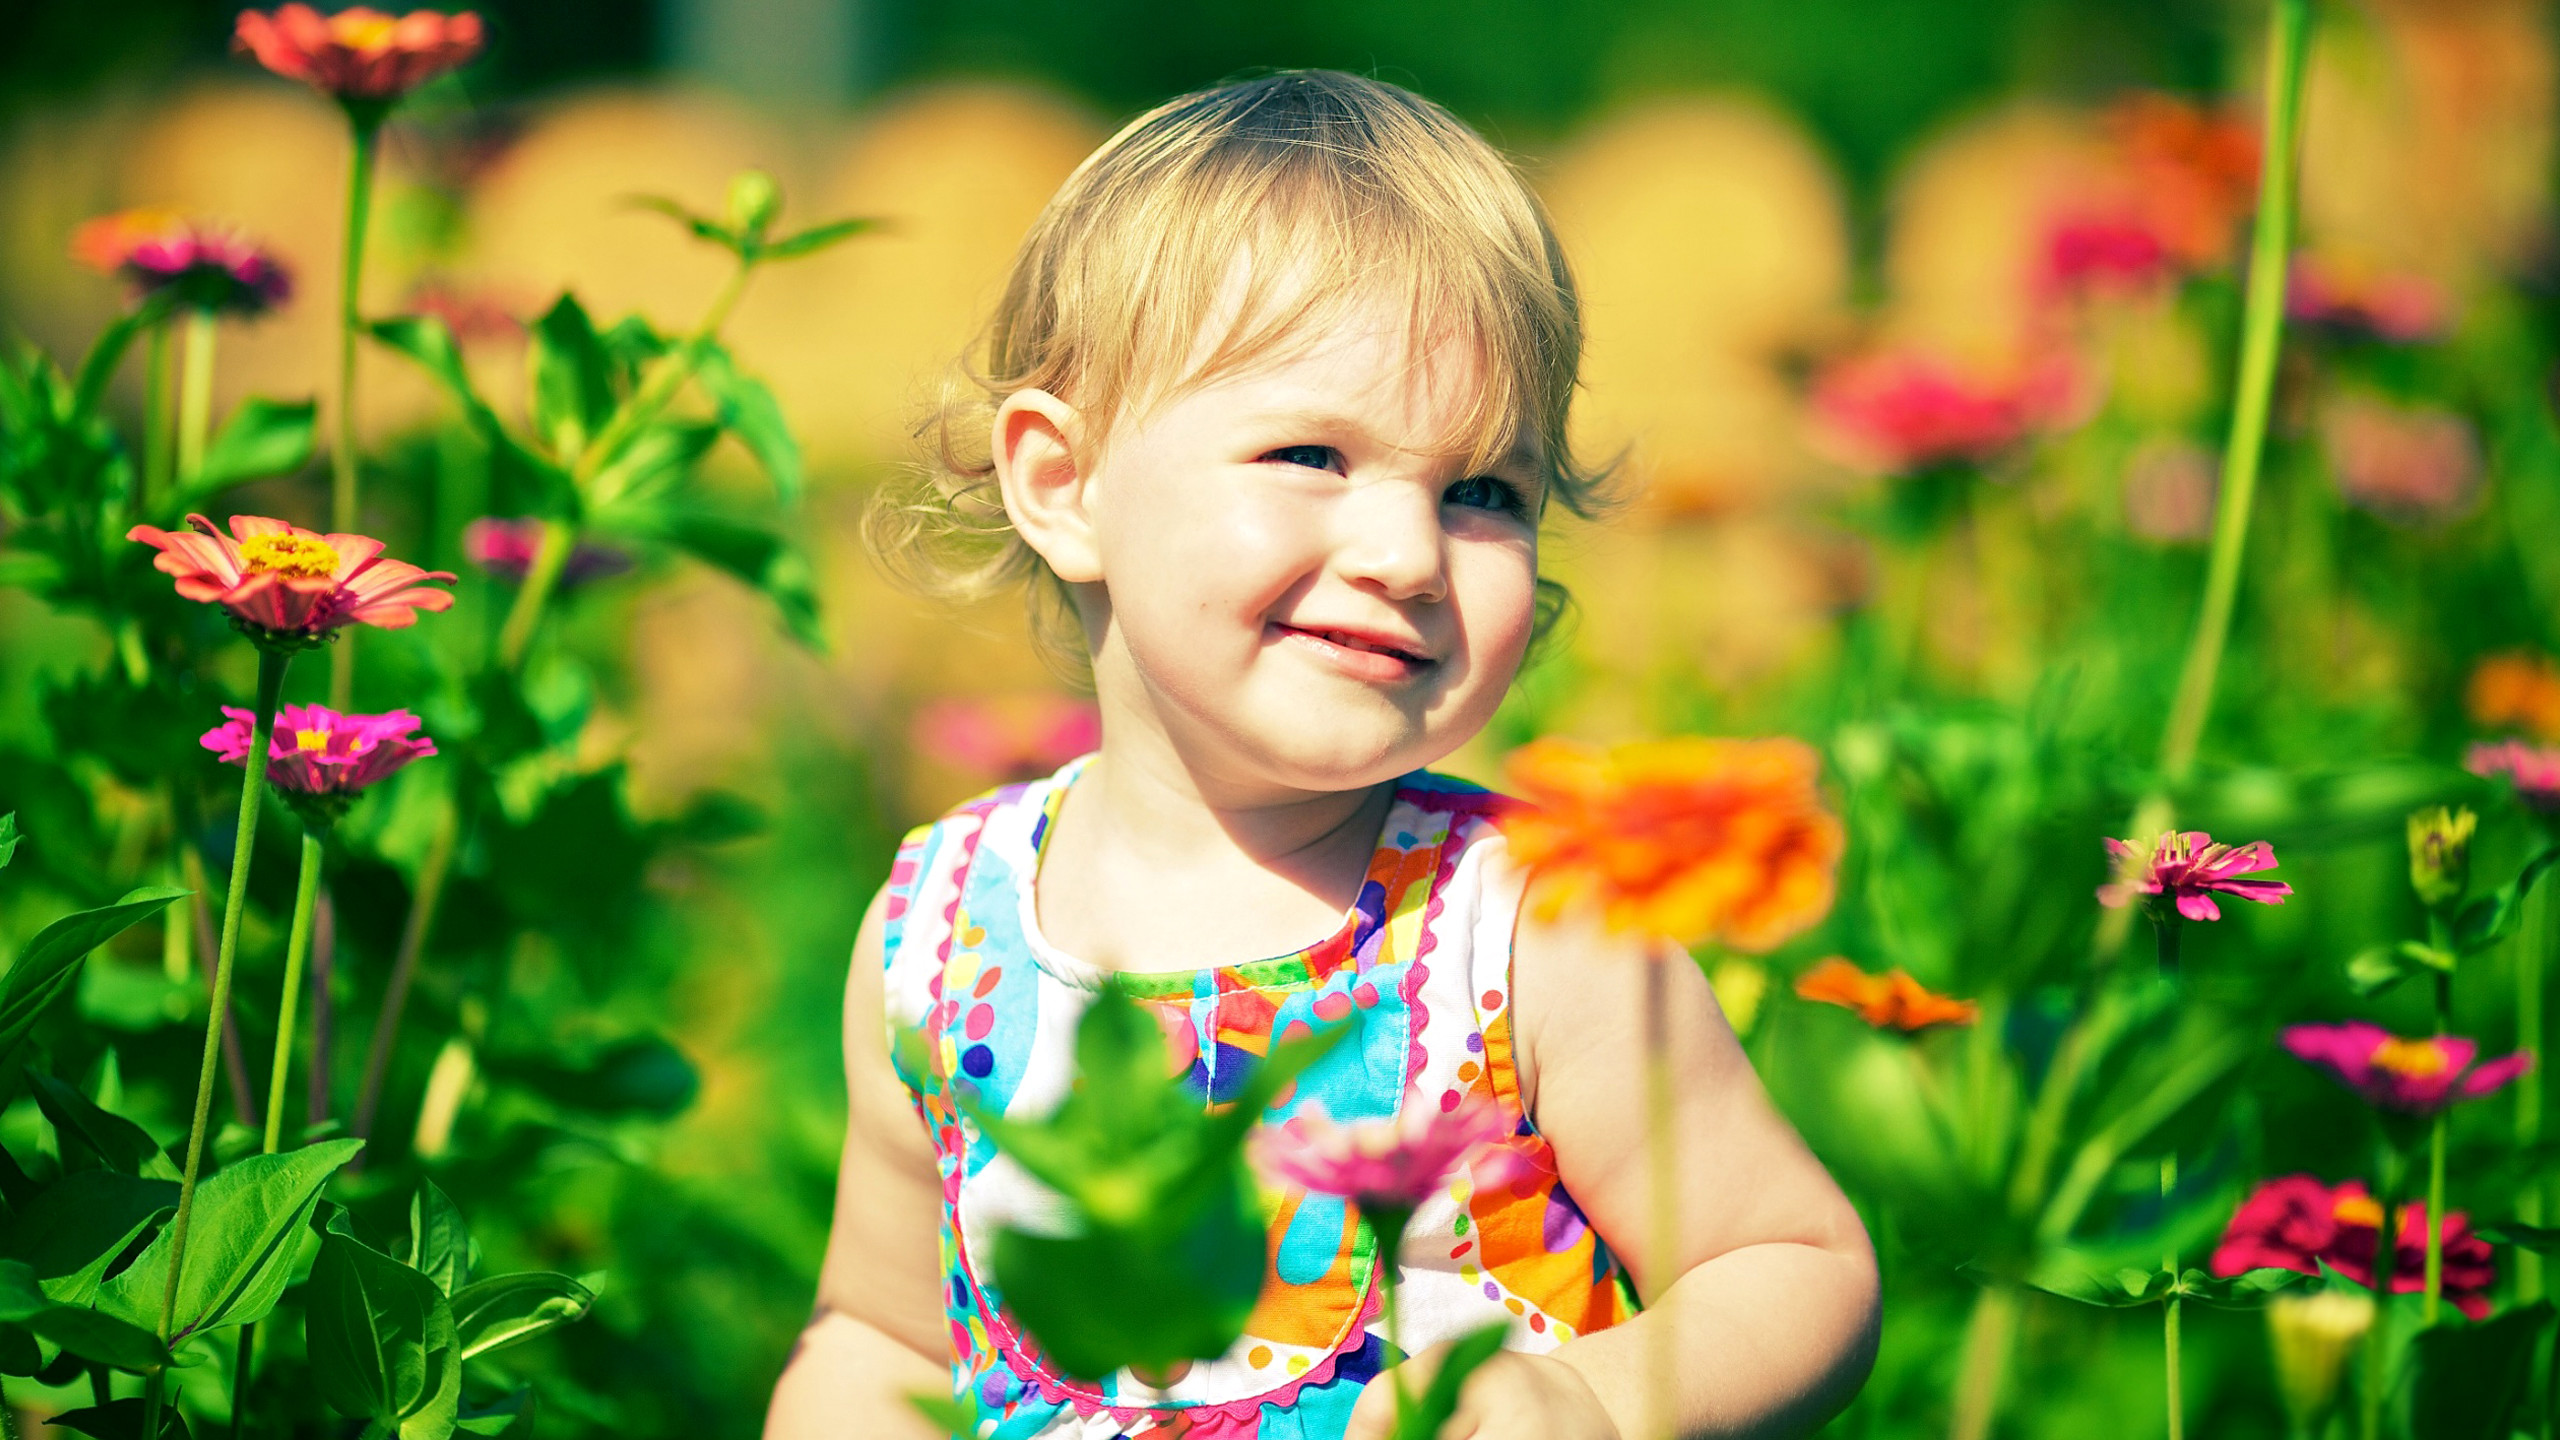 2560x1440 Cute child HD wallpapers for desktop free download